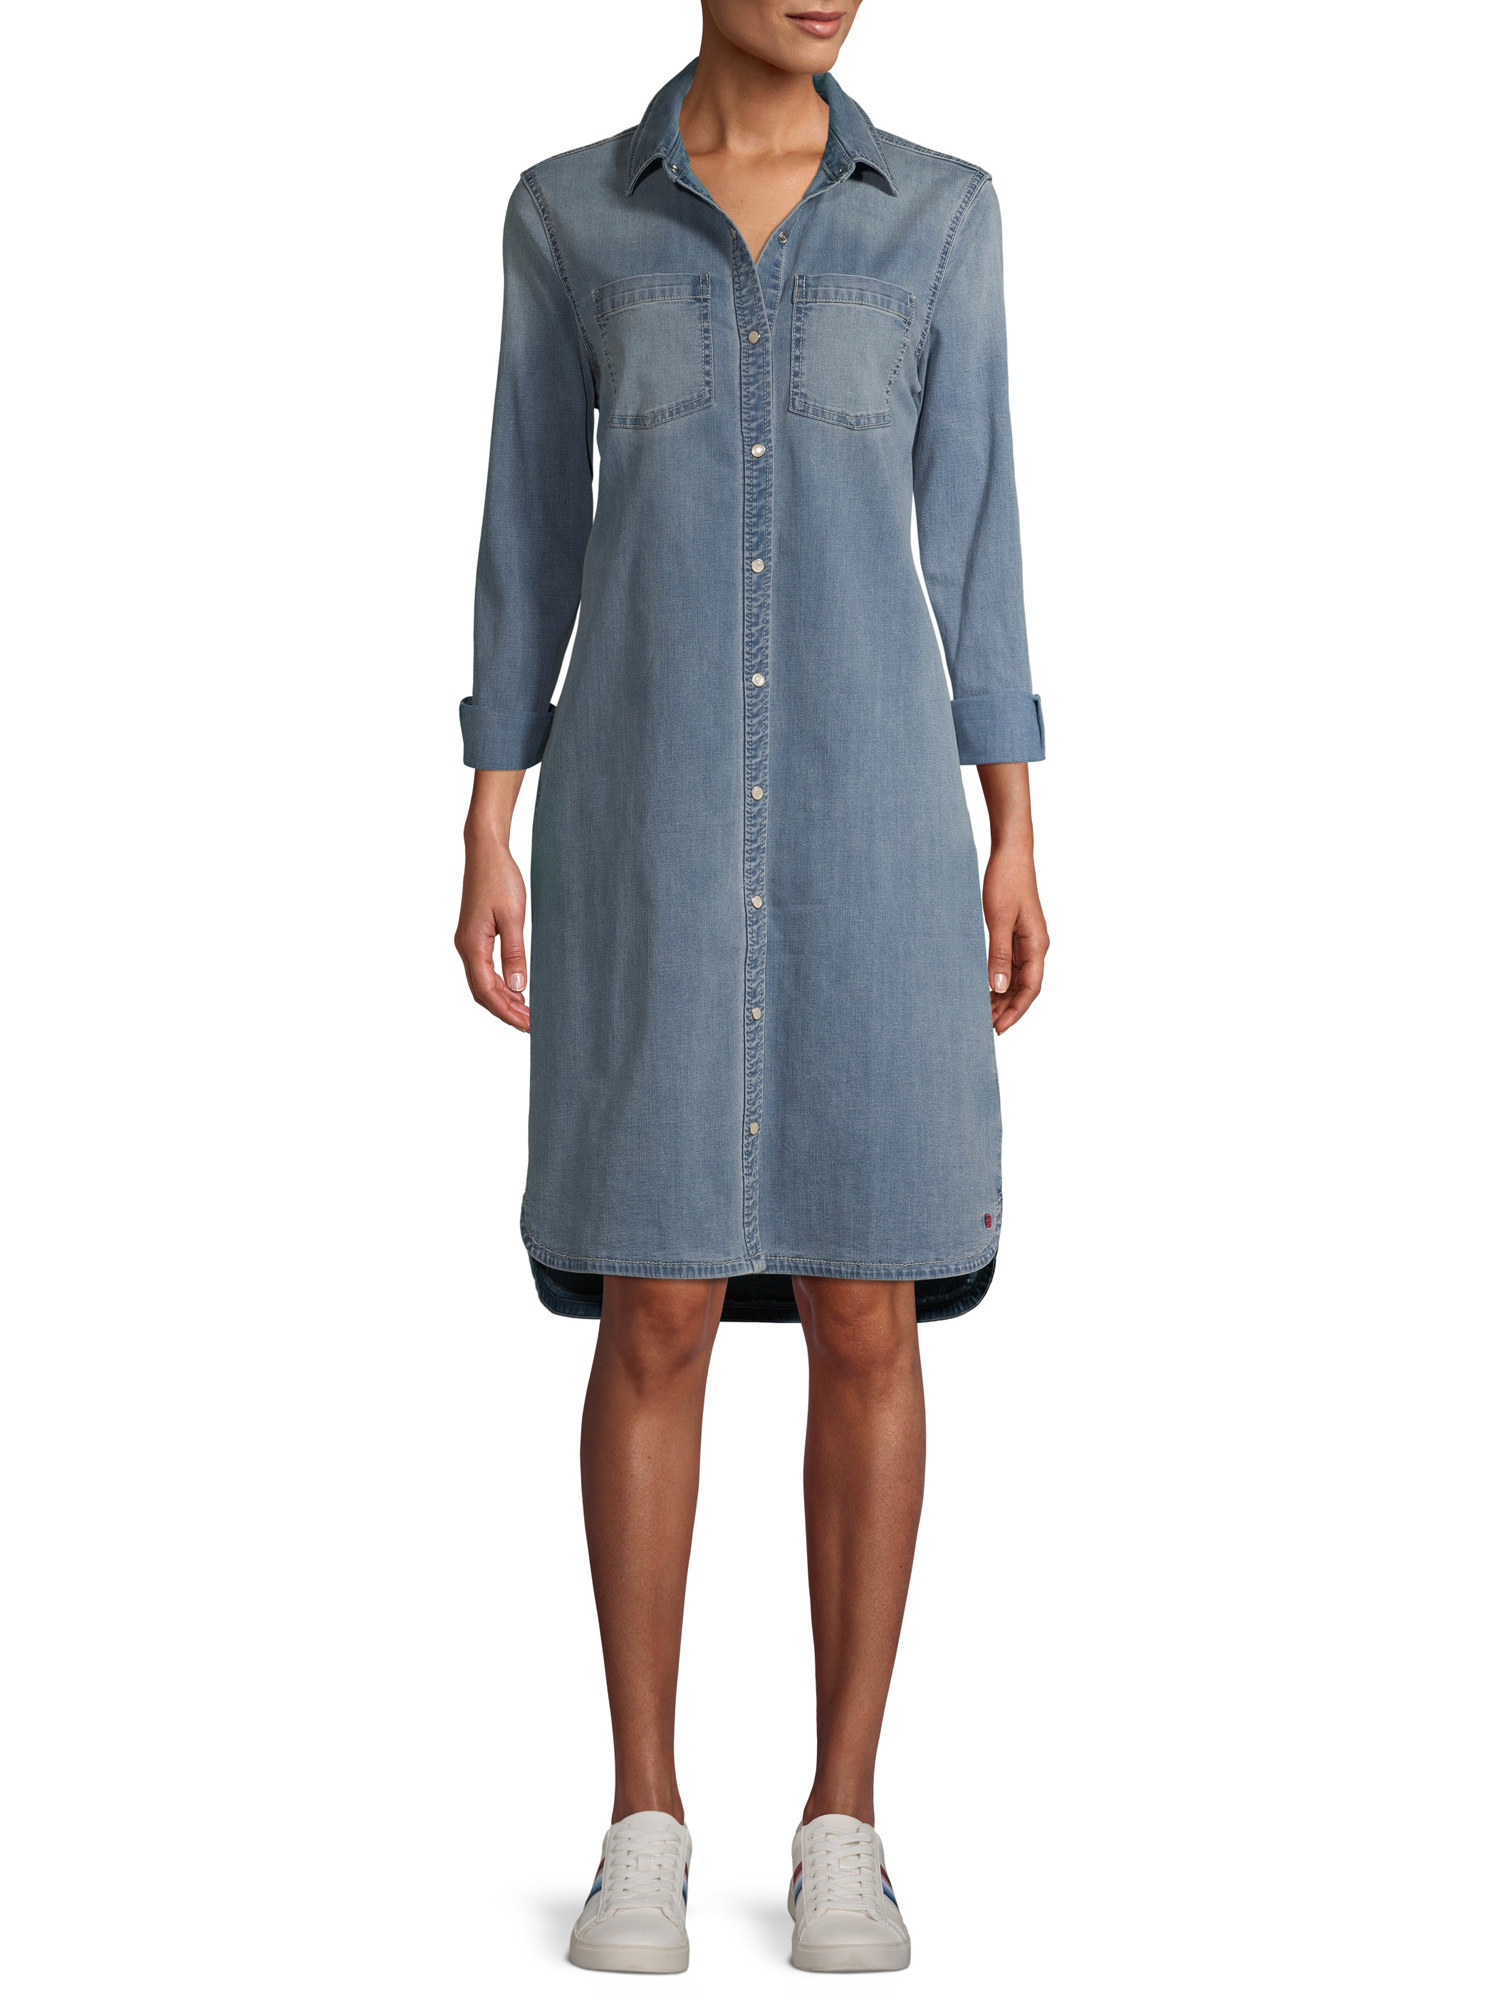 model in a denim button up dress with long sleeves